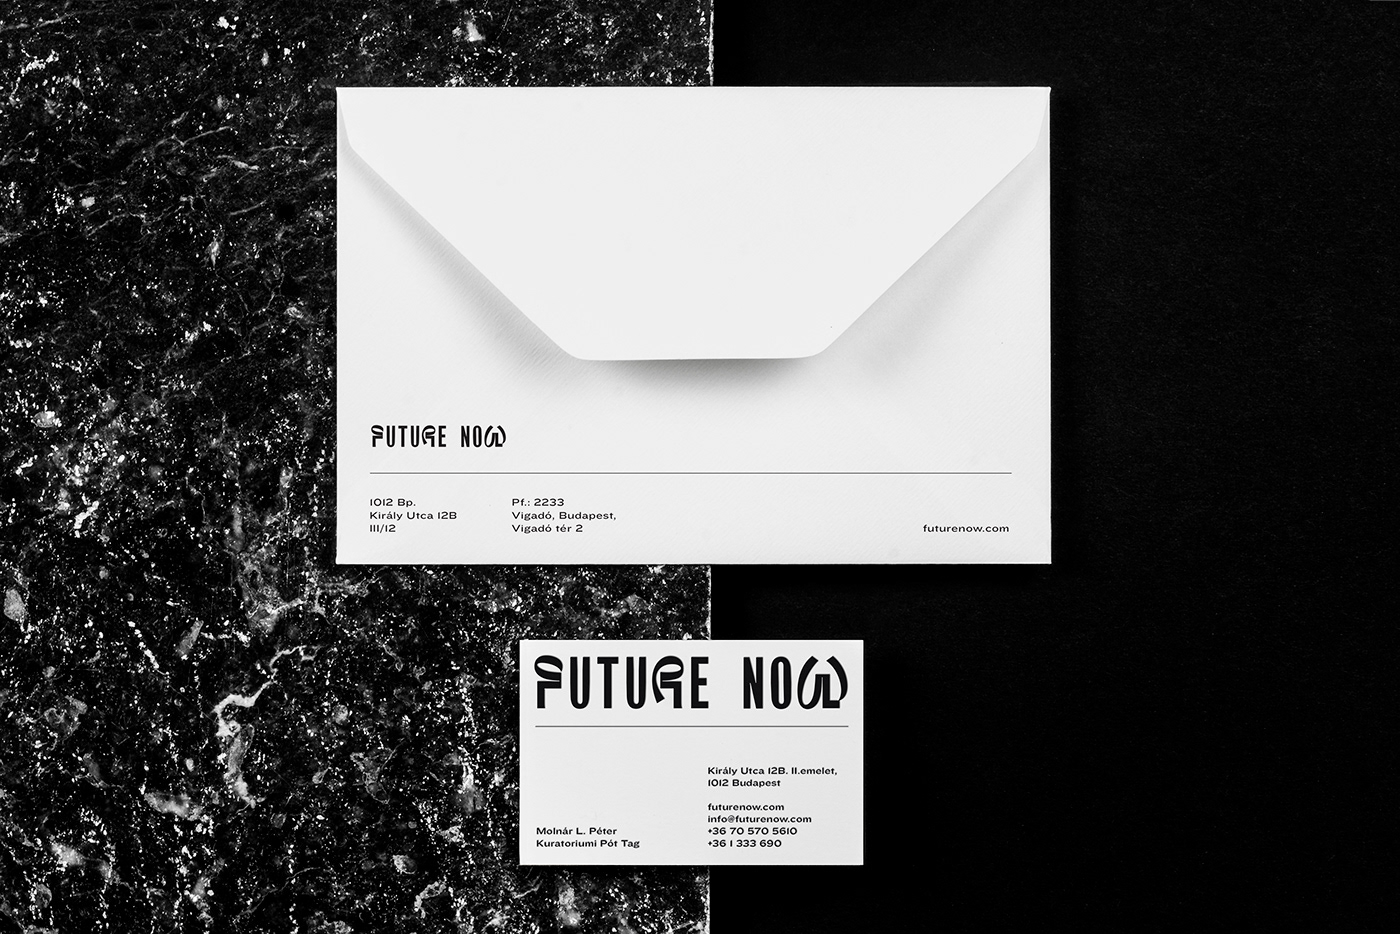 FUTURE NOW Design Conference Branding Concept by Classmate Studio